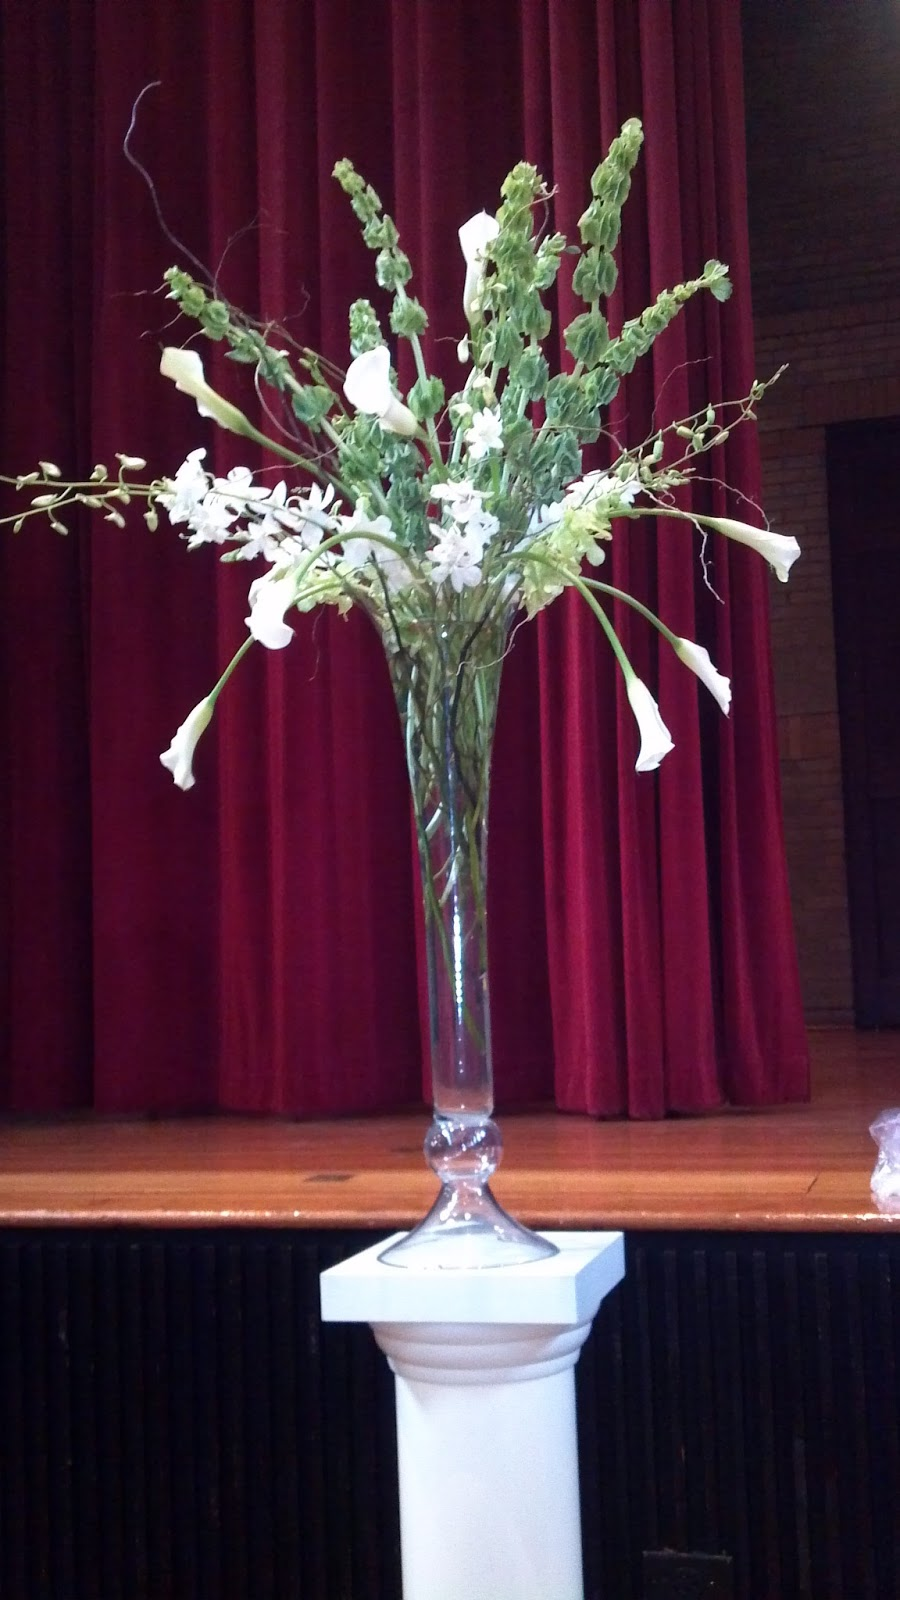 Sweet blossoms llc january 2013 this aisle arrangement is a 30 inch glass trumpet vase filled with curly willow bells of ireland white calla lilies and white dendrobium orchids reviewsmspy